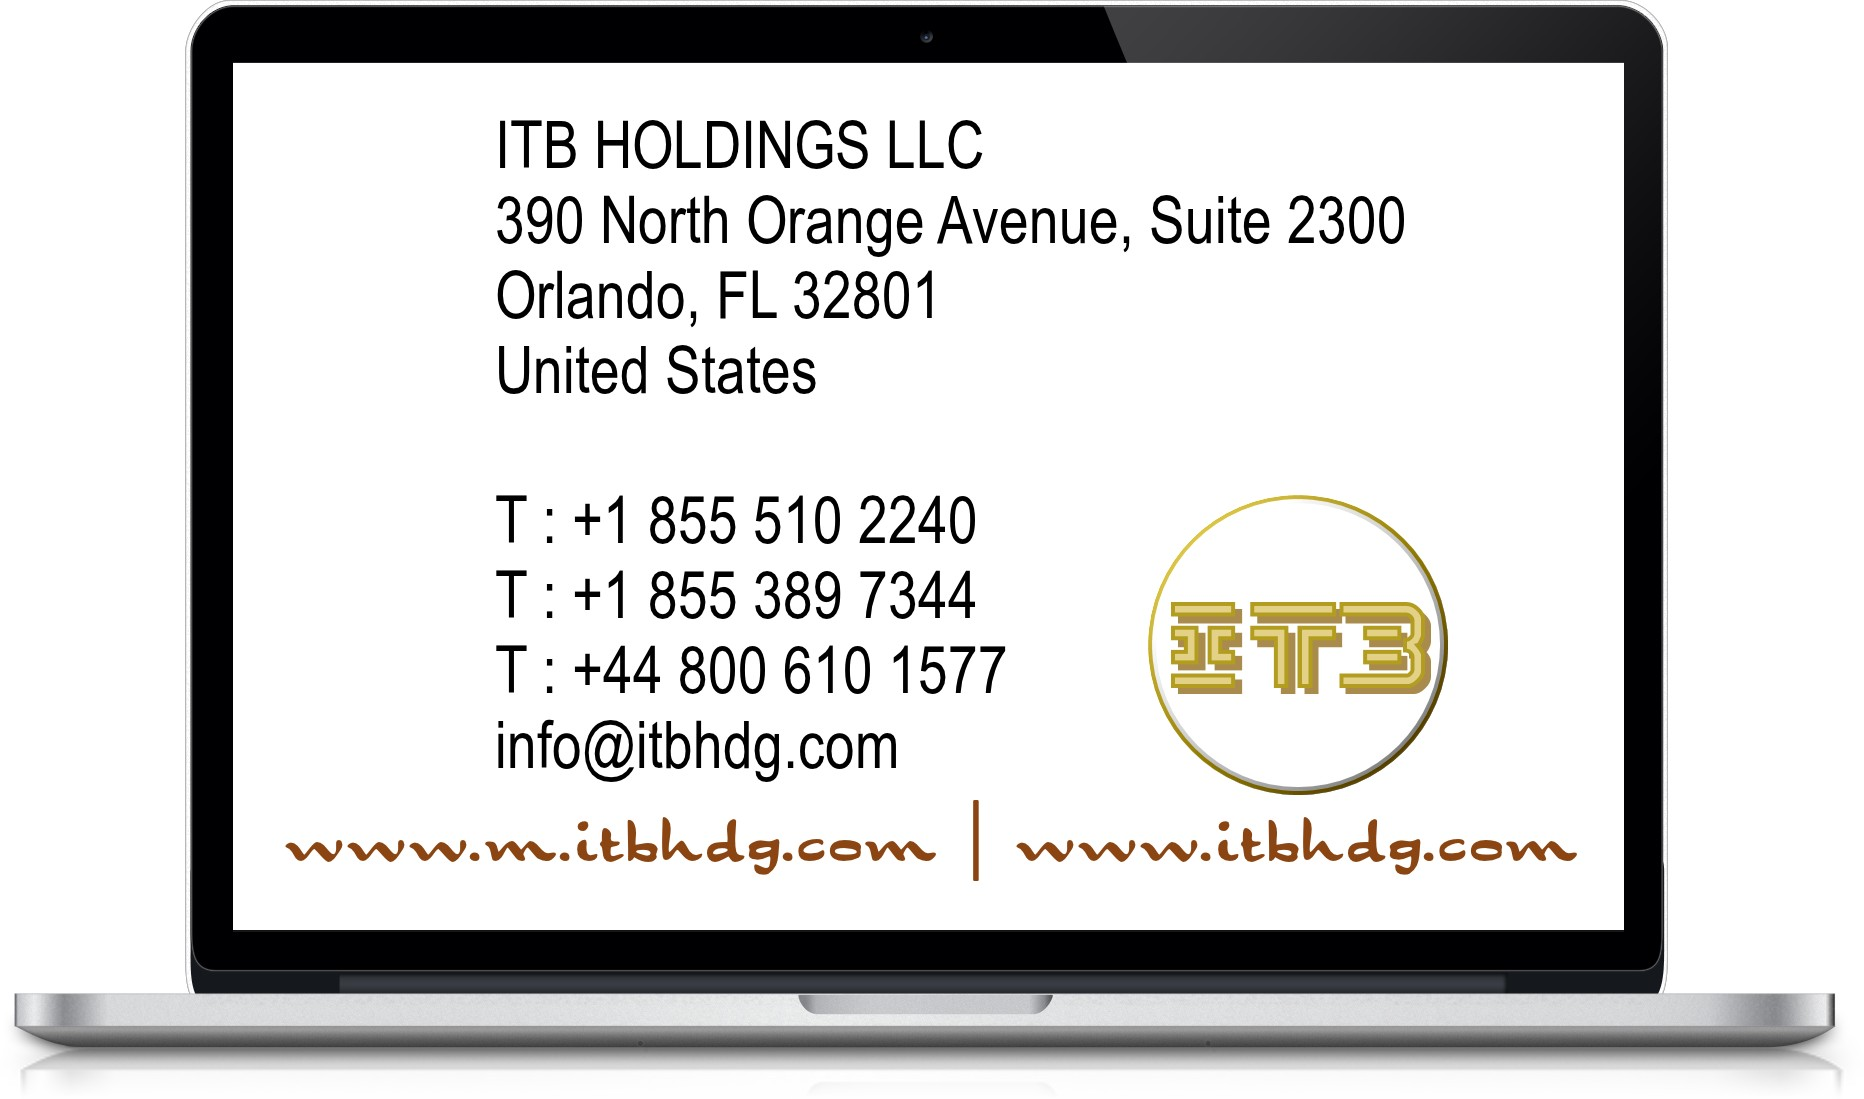 FDA REGISTRATION of your Medical Device Company | www.m.itbhdg.com | www.itbhdg.com